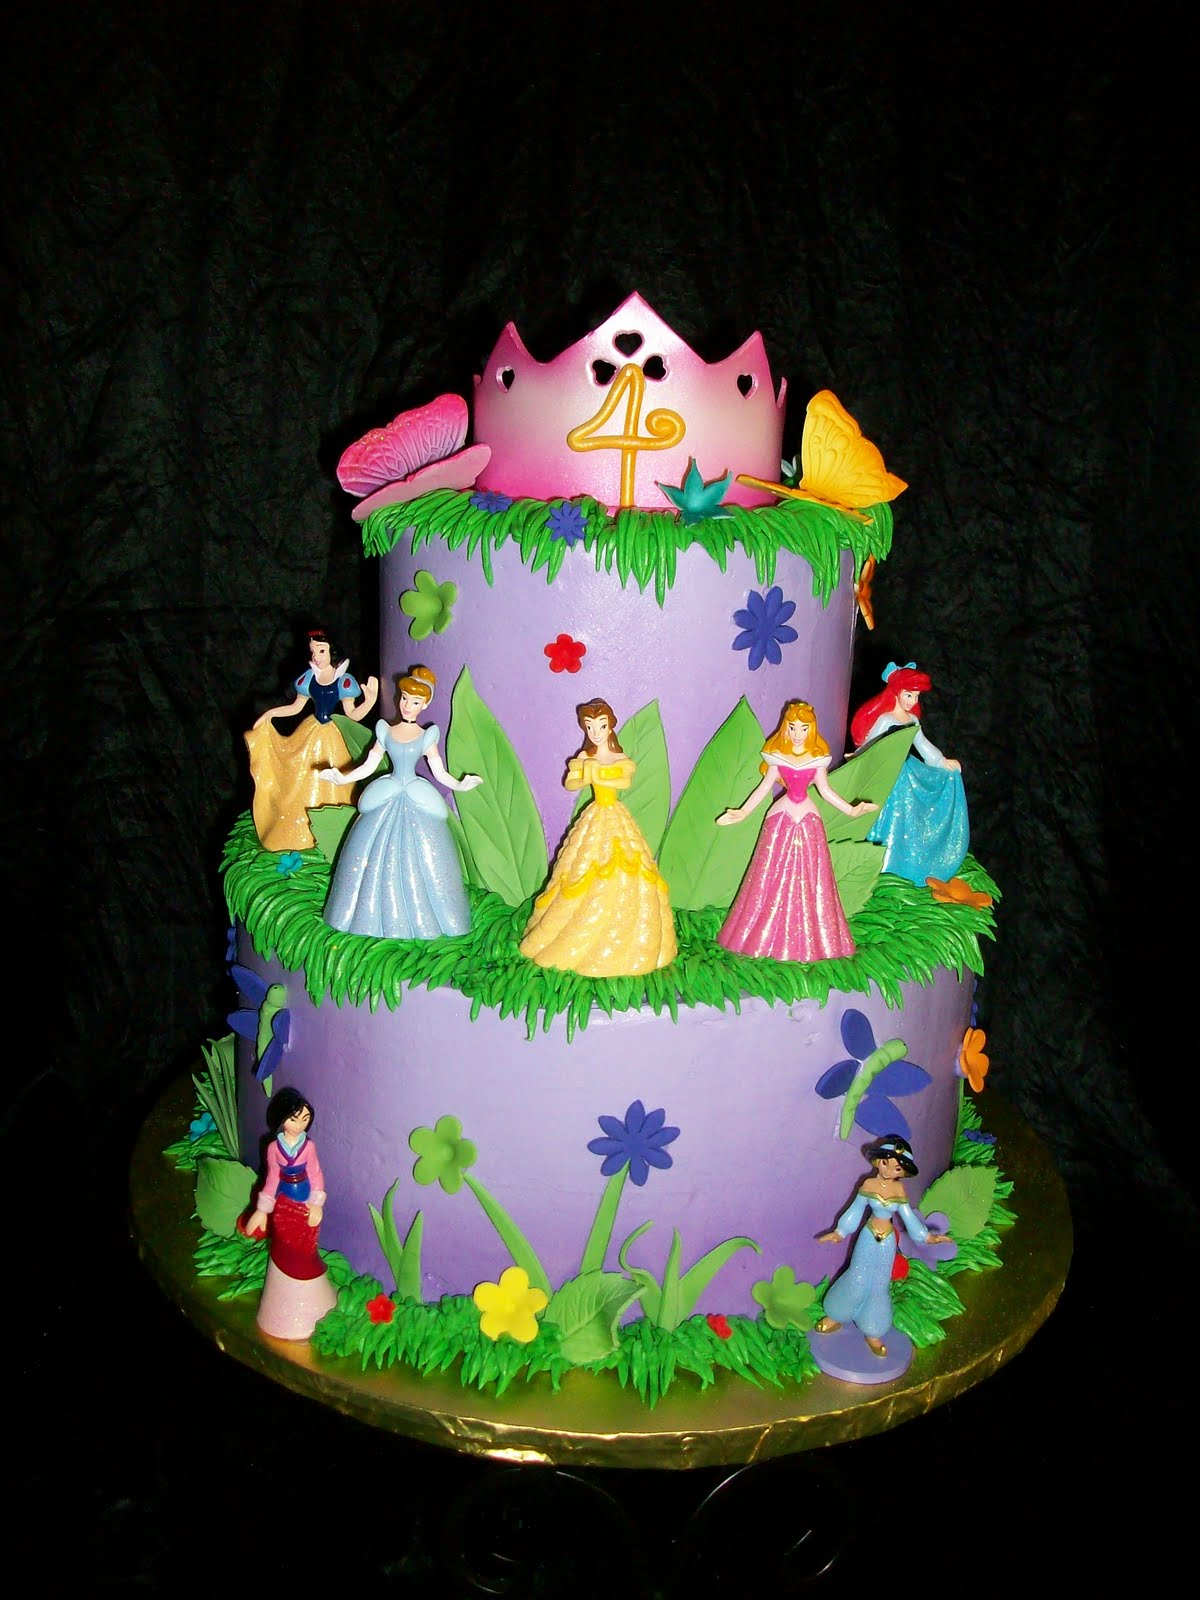 Disney Cake Designs Princesses : PRINCESS BIRTHDAY CAKE